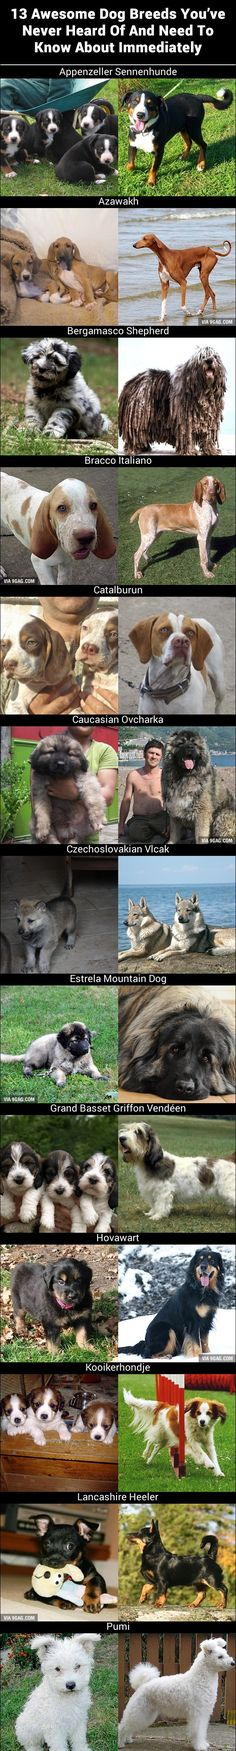 13 Awesome Dog Breeds You've Never Heard Of But Really Need To